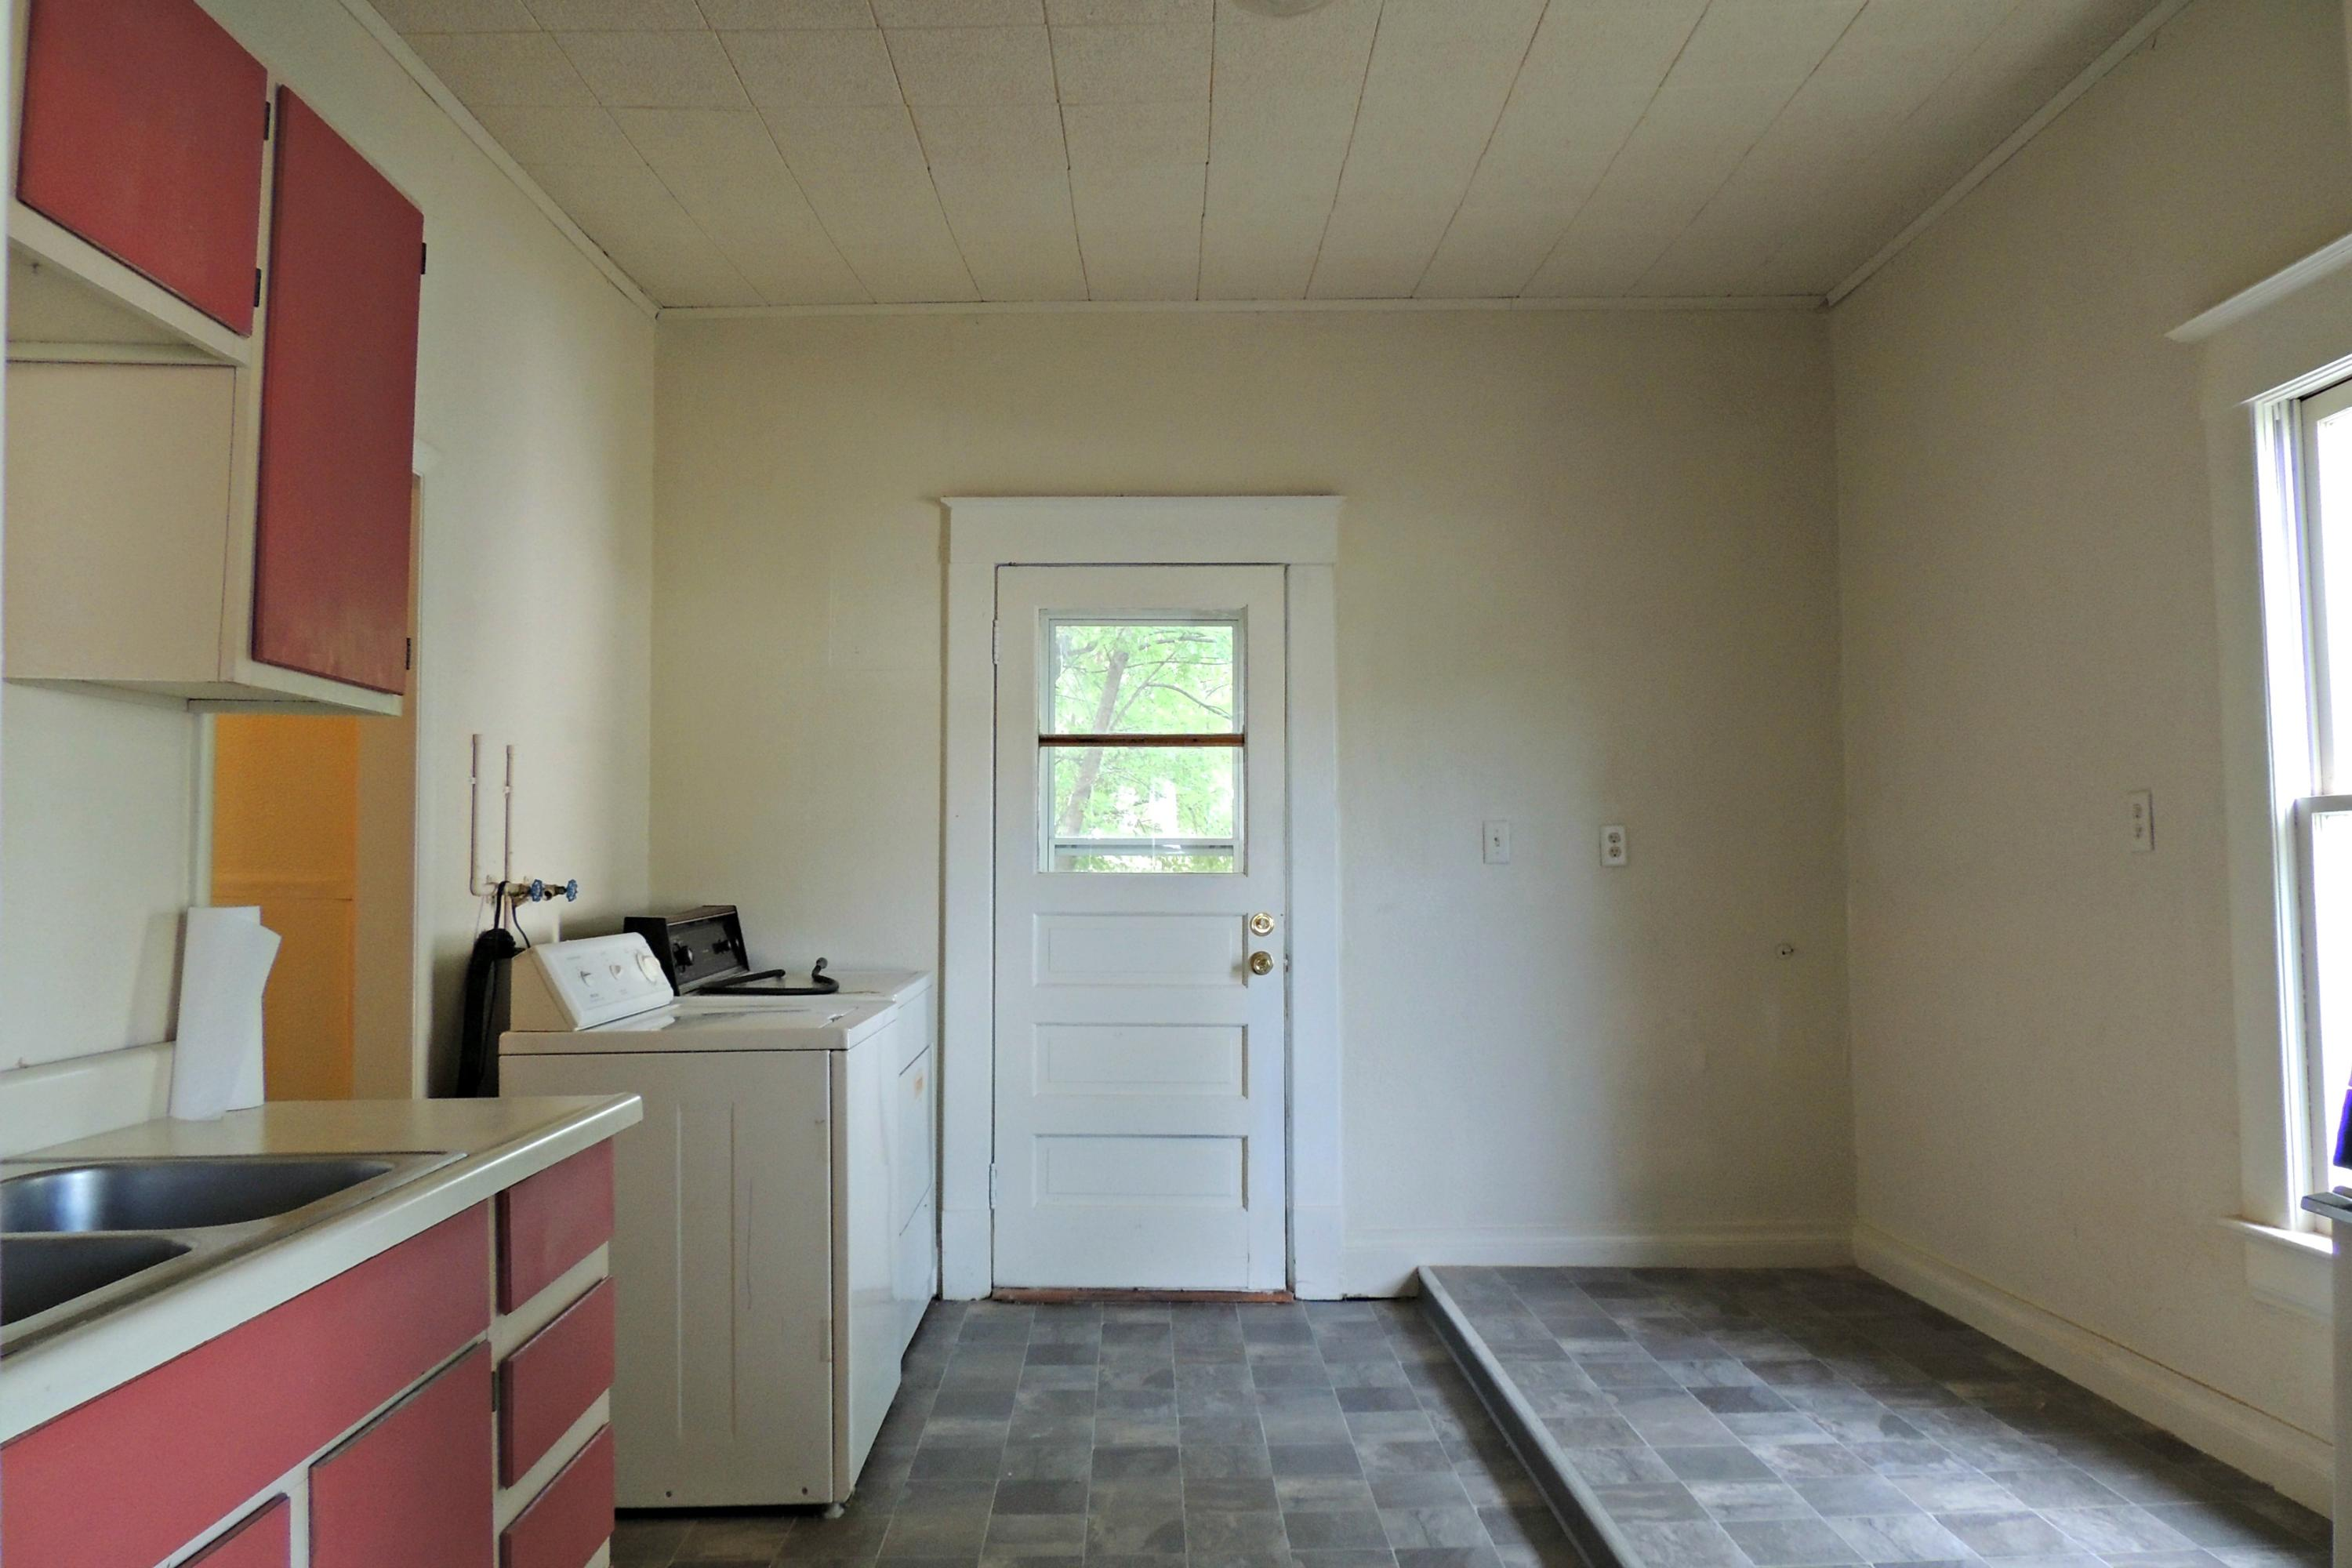 816 E 4TH Street, Maryville, Missouri 64468, 2 Bedrooms Bedrooms, ,1 BathroomBathrooms,Residential,4TH,4201